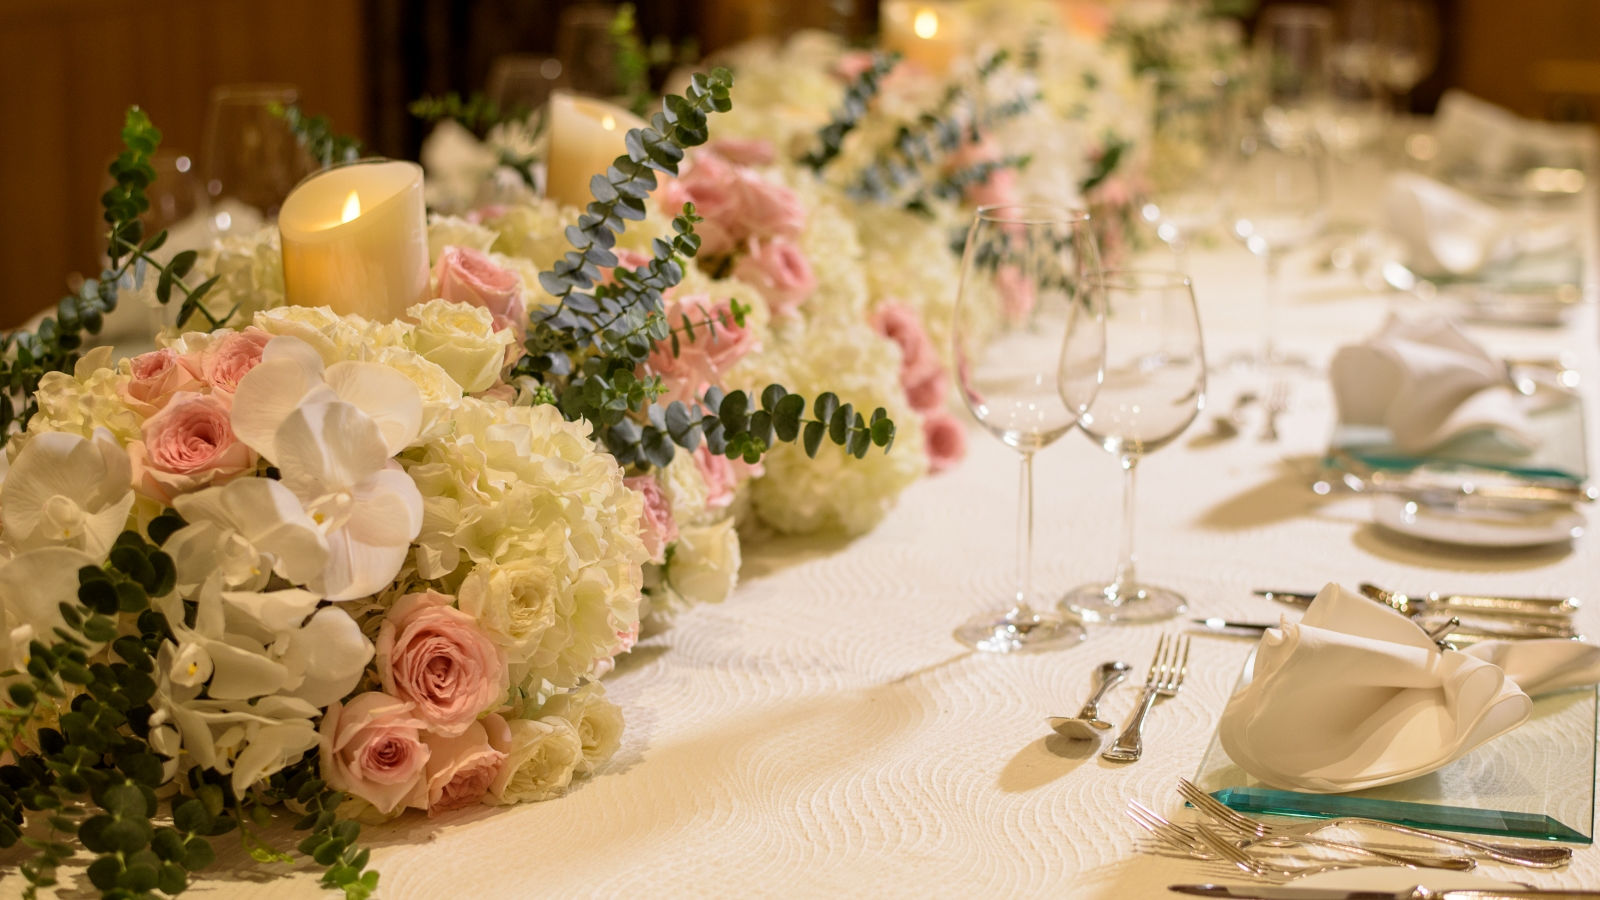 Enchanting wedding feast